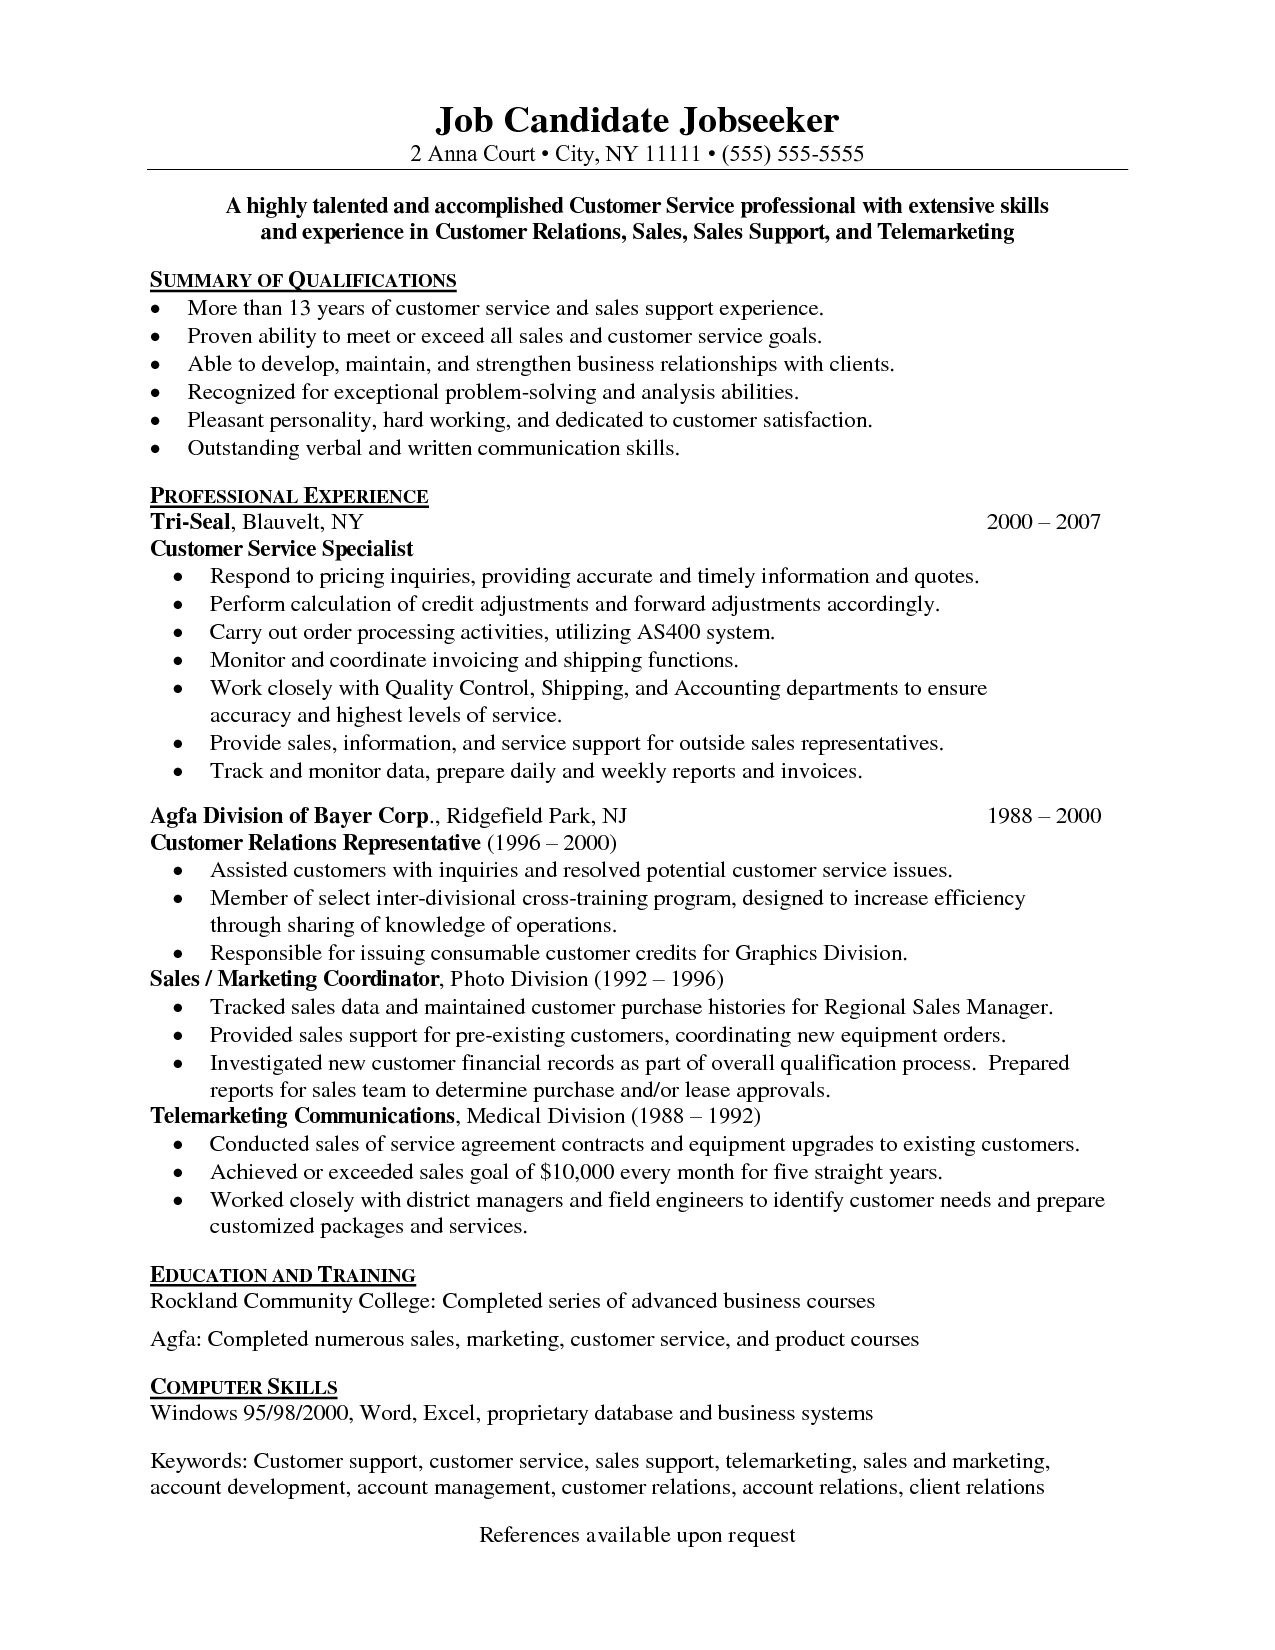 Customer Service Resume - Resume Skills Examples Customer Service Refrence Beautiful Grapher